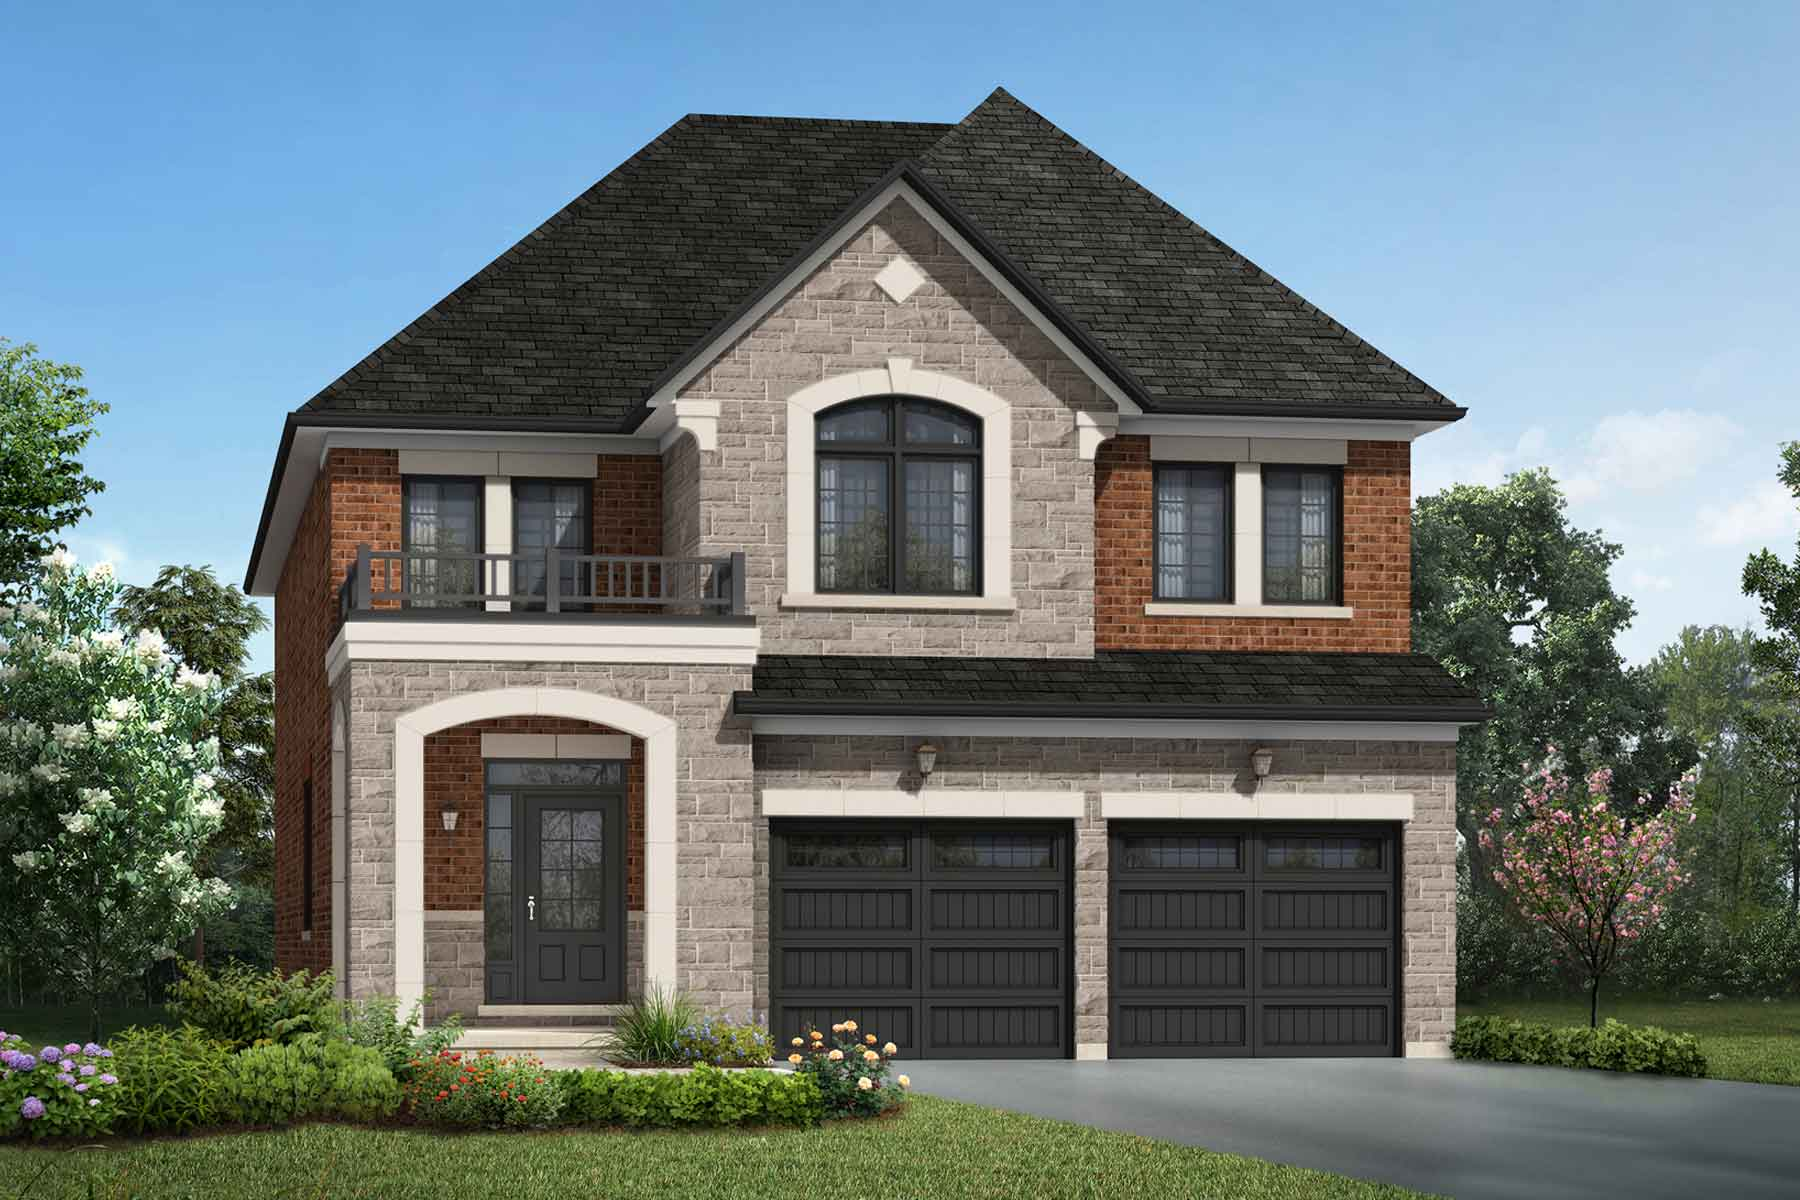 Seaton Whitevale englishmanor_seatonwhitevale_brockridge_main in Pickering Ontario by Mattamy Homes